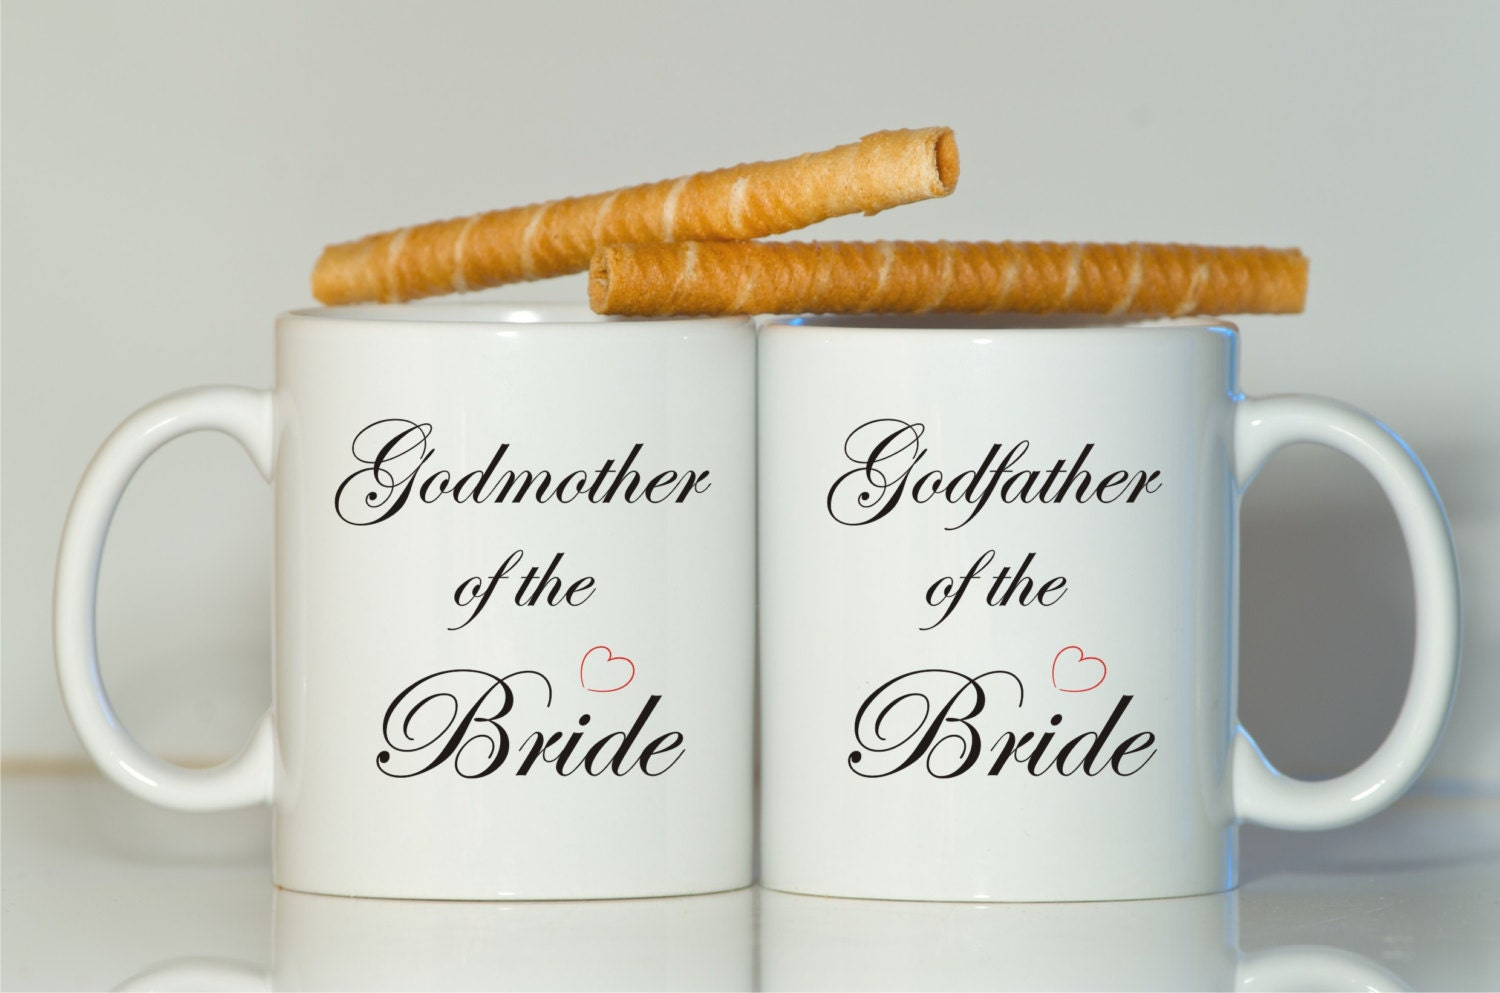 Godmother of the bride gift-Godfather of the bride